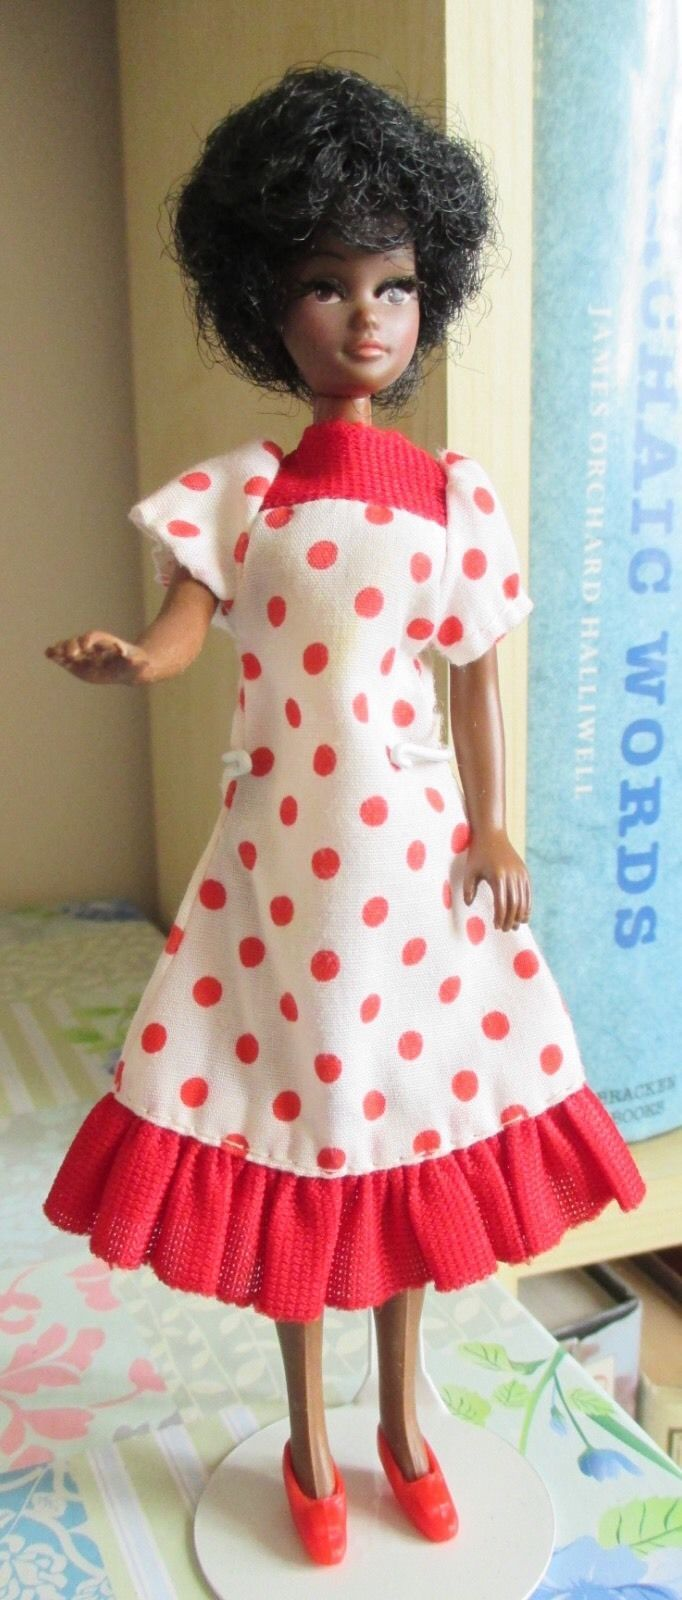 VHTF Vintage Meccano Pippa Doll Mandy in Dolls & Bears, Dolls, Clothing & Accessories, Fashion, Character, Play Dolls | eBay